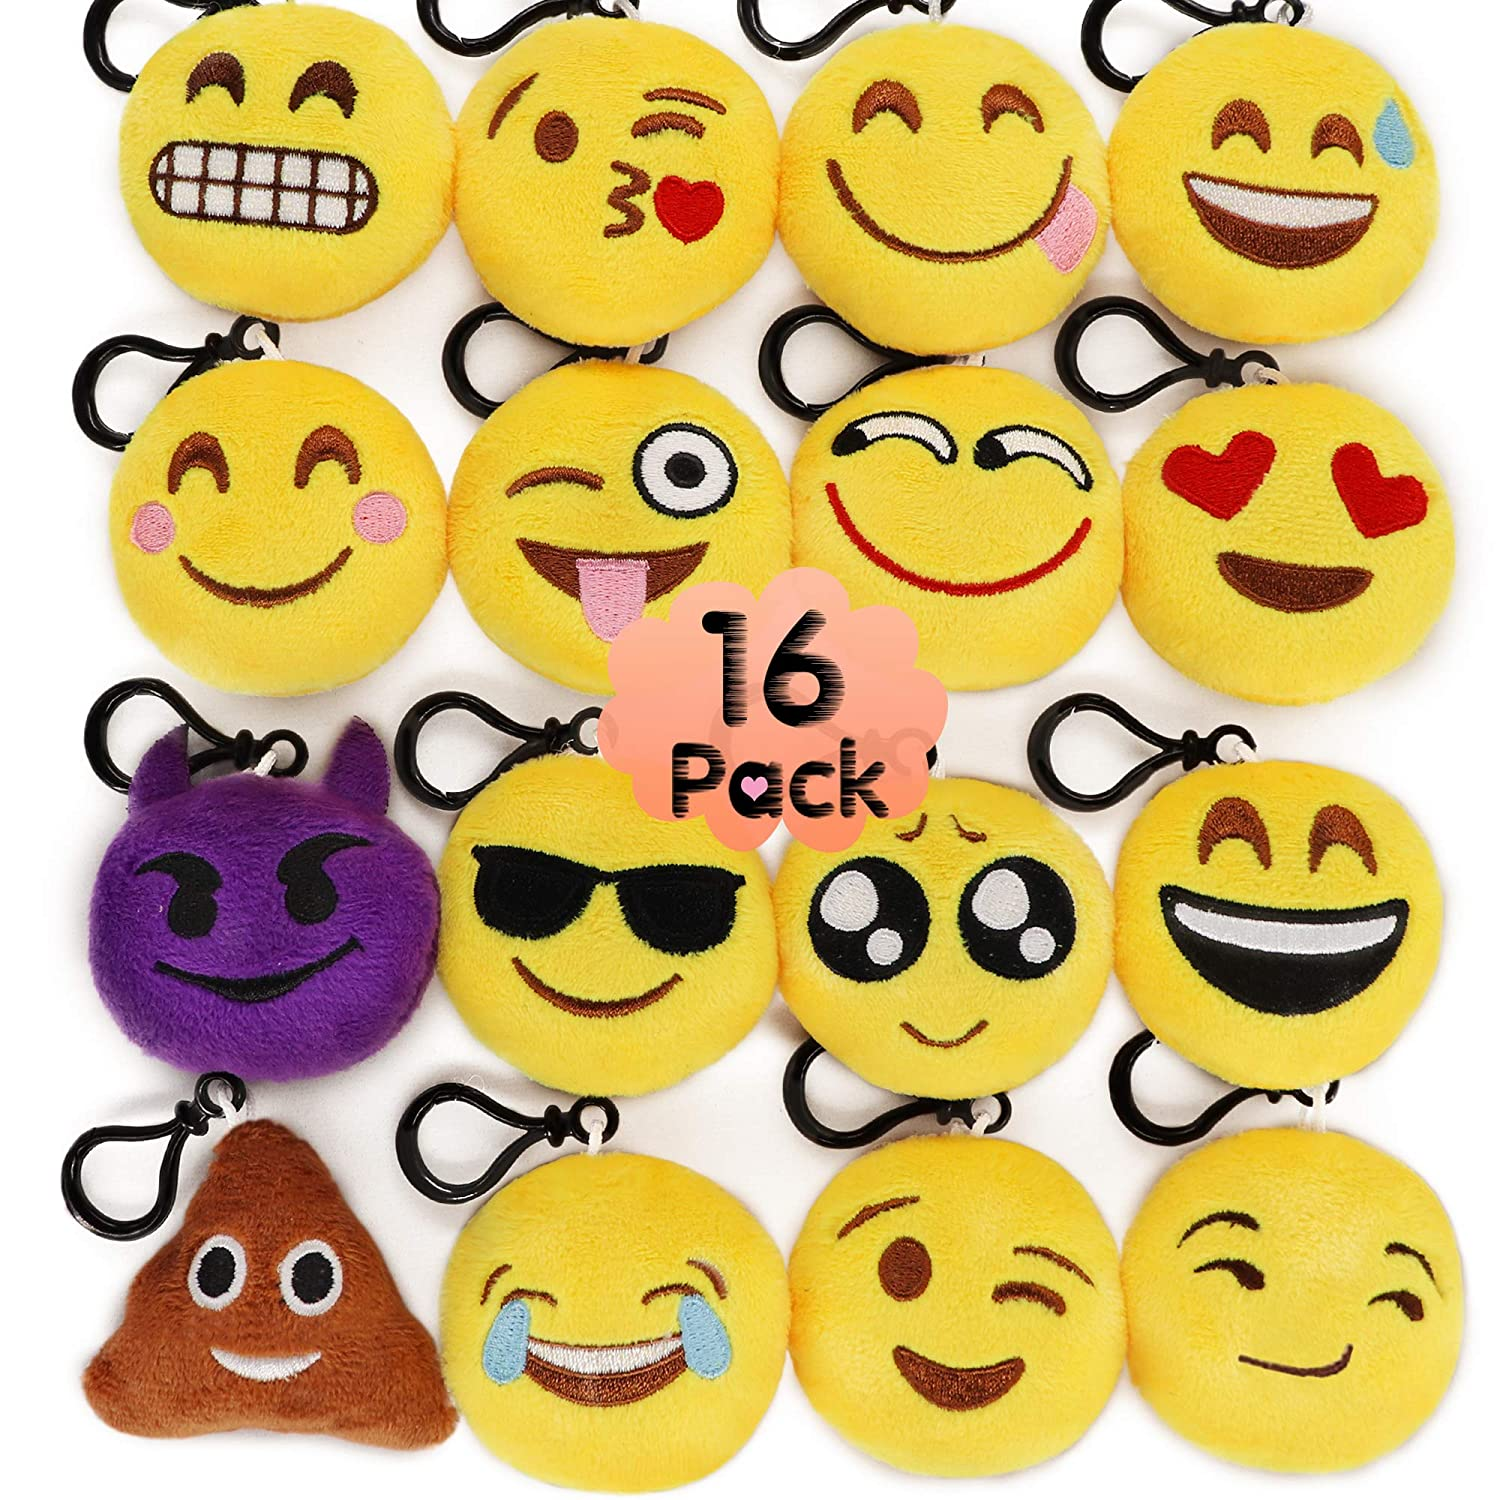 MelonBoat 16 Pack 2 Emoji Plush Keychain Mini Pillows Backpack Clips Emoticon Birthday Party Favors Supplies Goodie Bag Stuffers Novelty